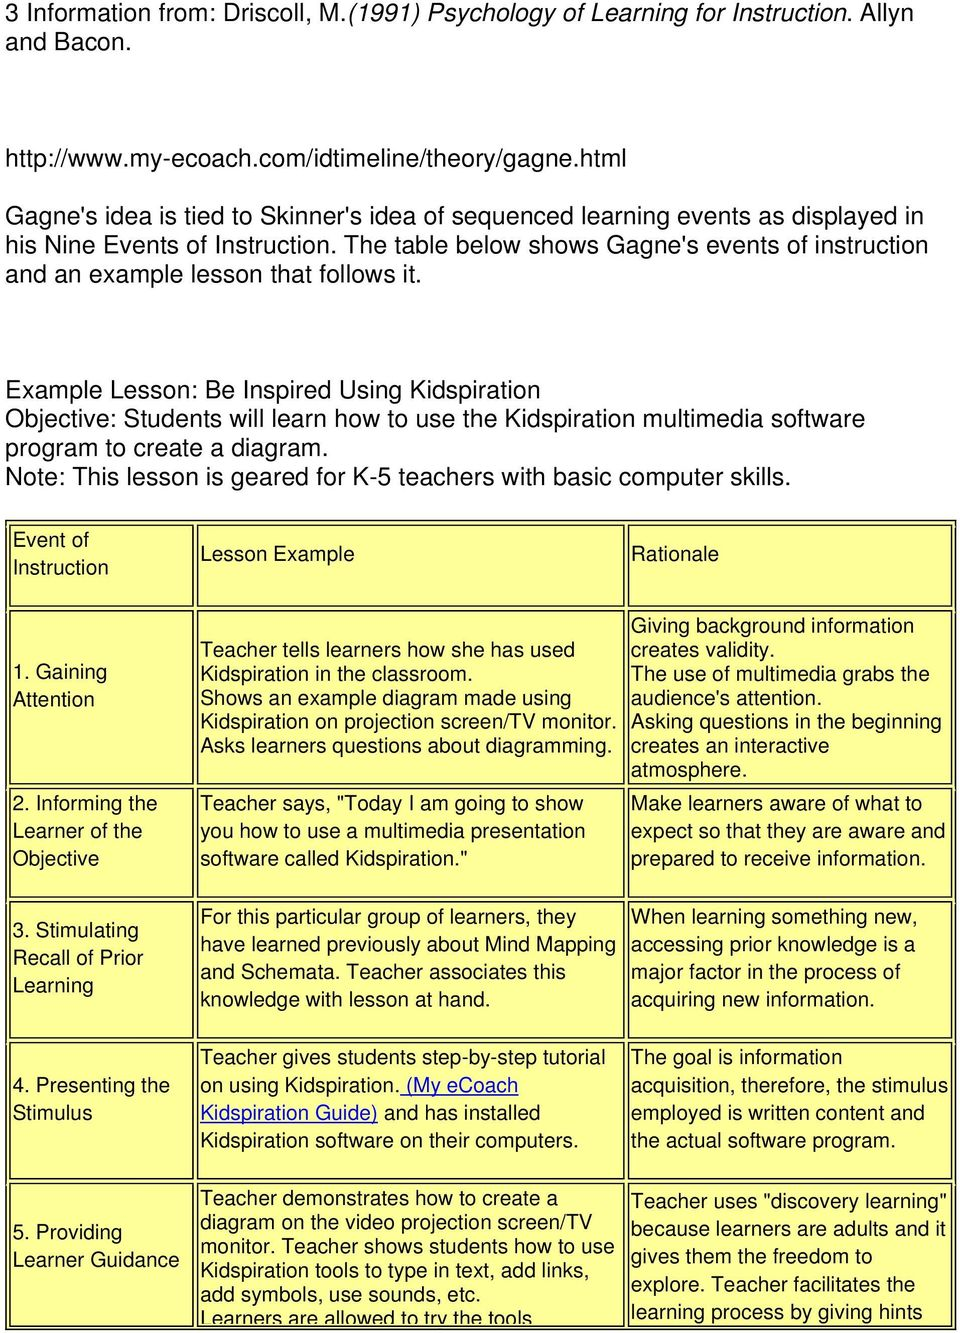 The table below shows Gagne's events of instruction and an example lesson that follows it.